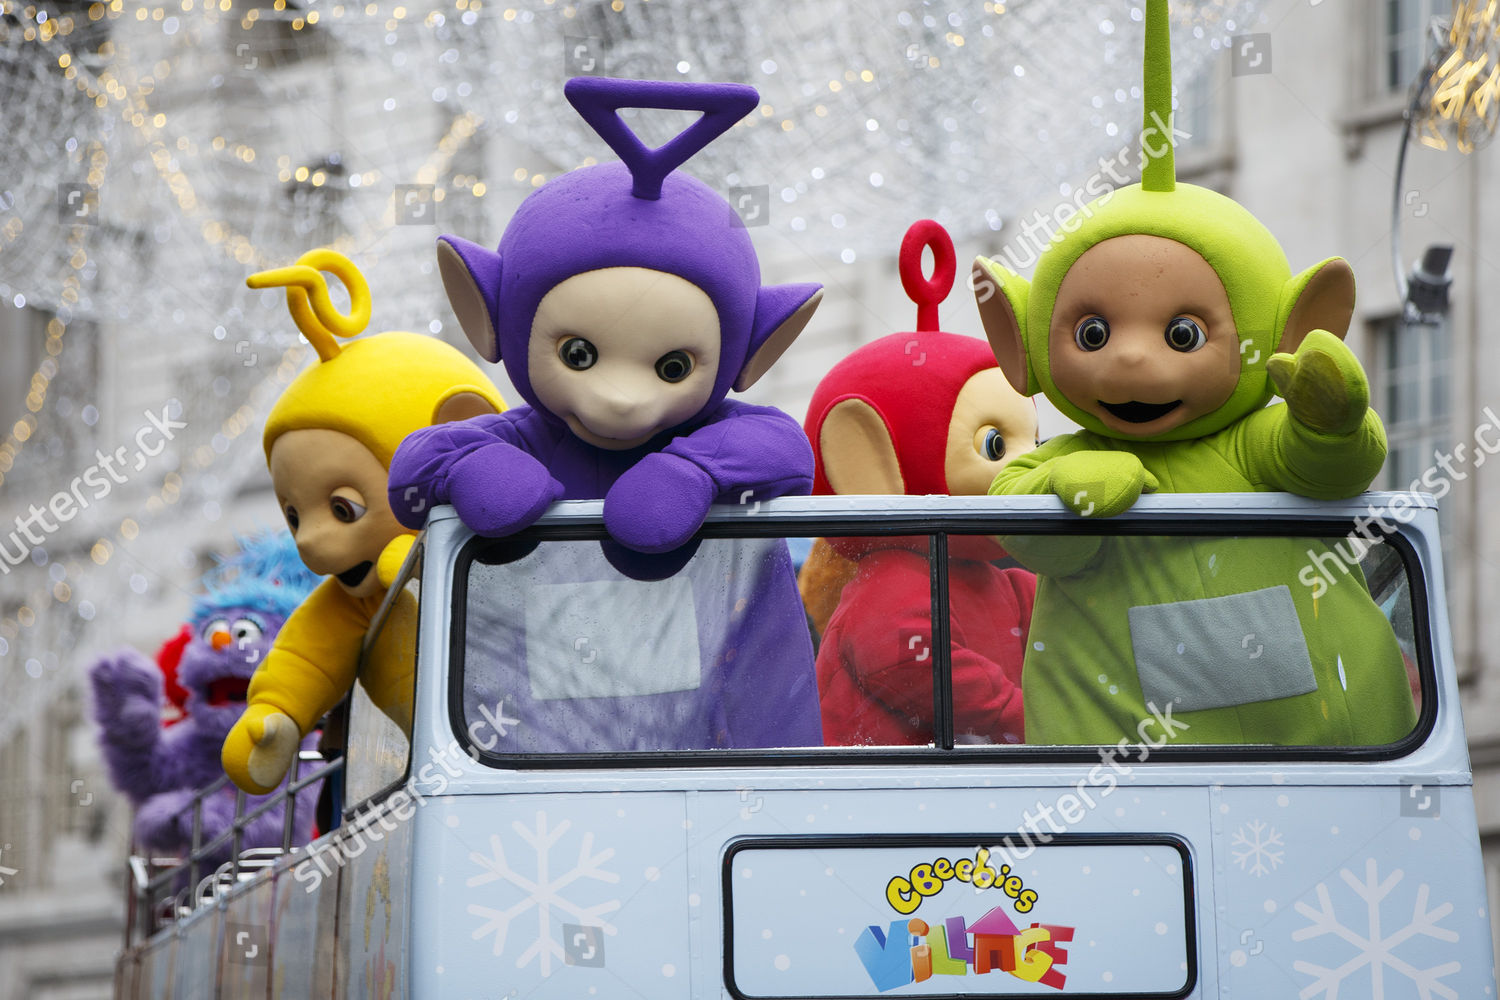 Performers Dressed Teletubbies Wave Children Over 400 Editorial